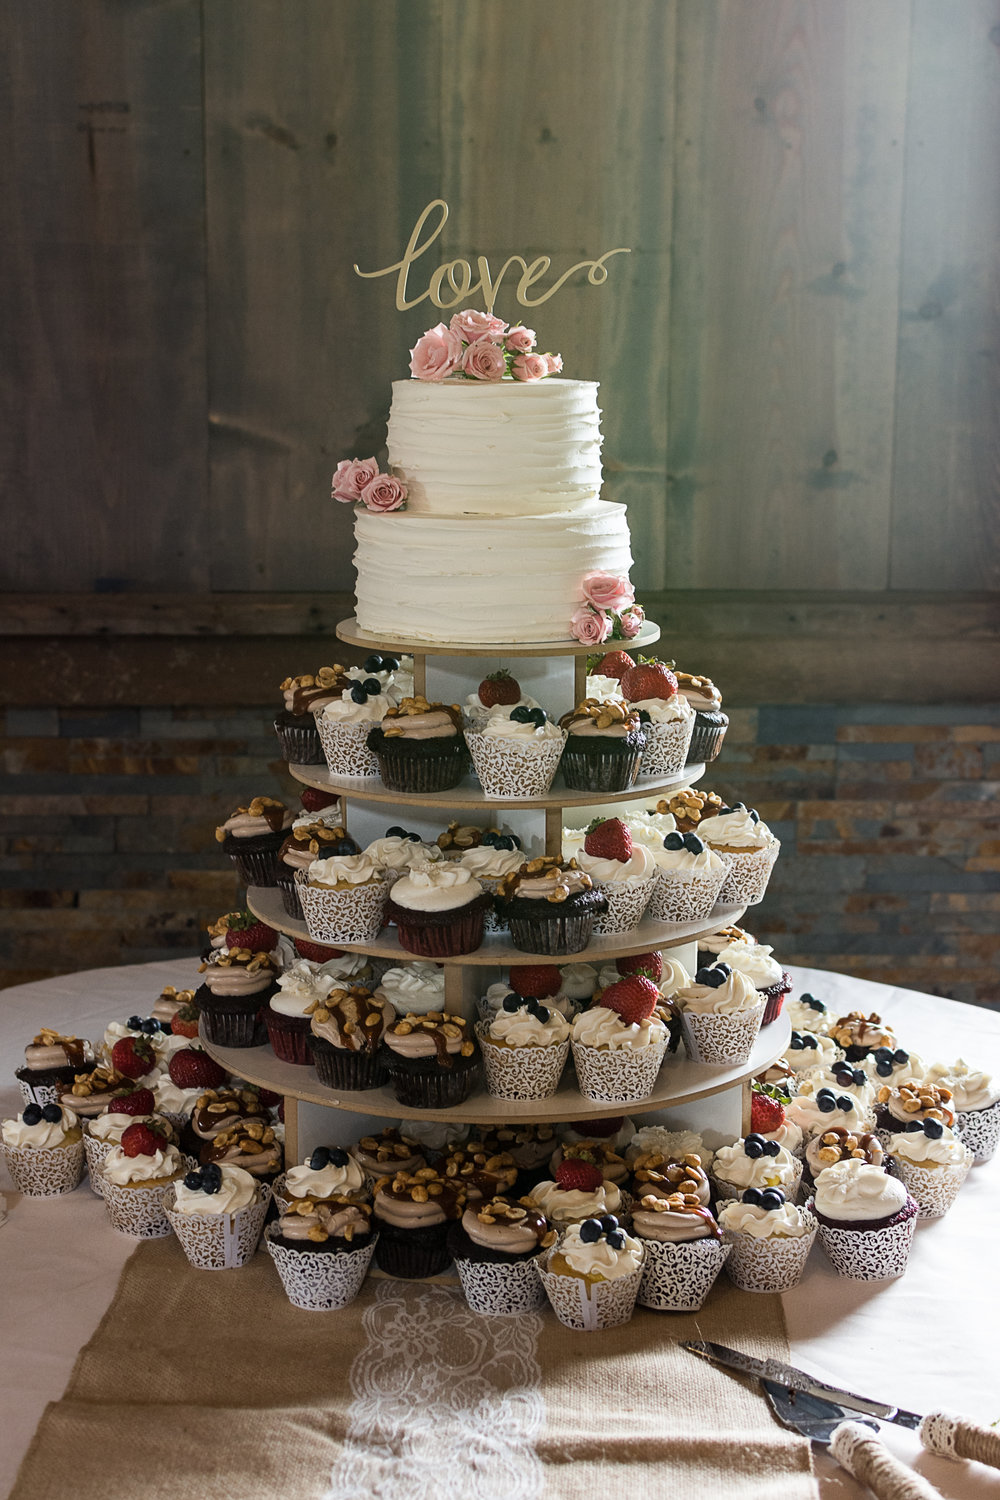 Rustic Romantic Cupcake Tower made by Jen Barney at Meringue Bakery in La Crosse, Wisconsin